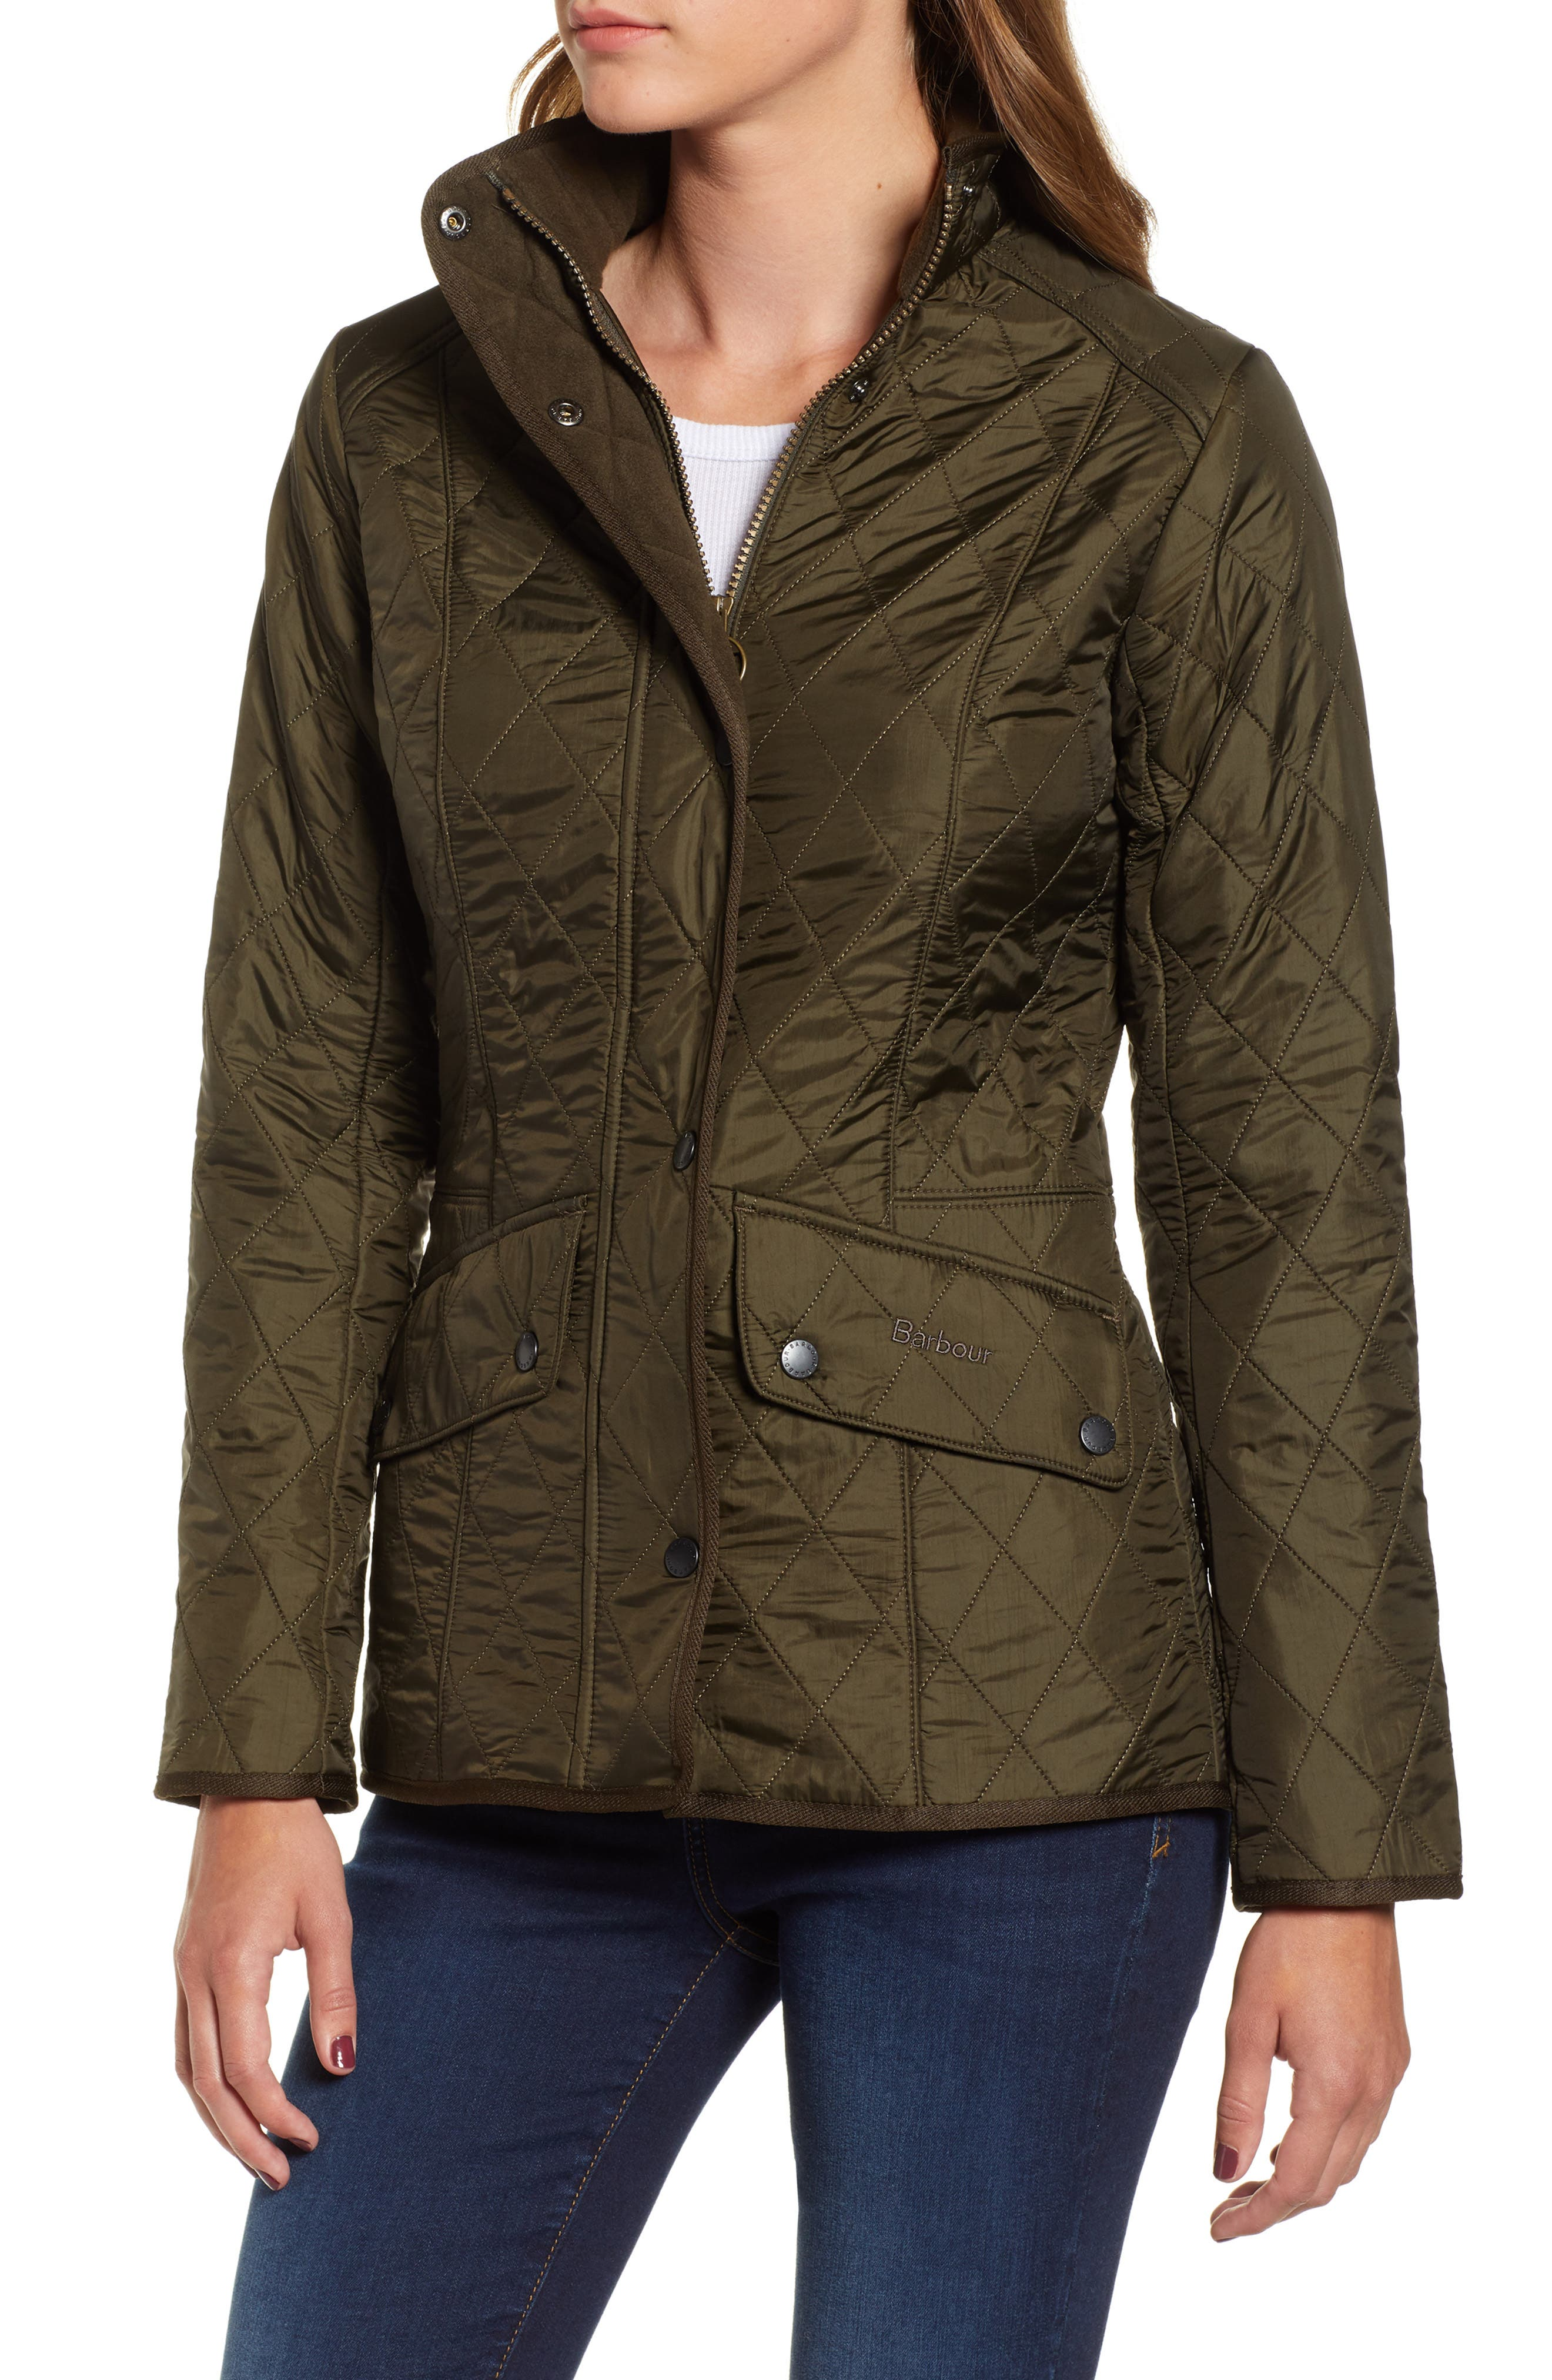 BARBOUR, 'Cavalry' Quilted Jacket, Alternate thumbnail 4, color, DARK OLIVE/ OLIVE